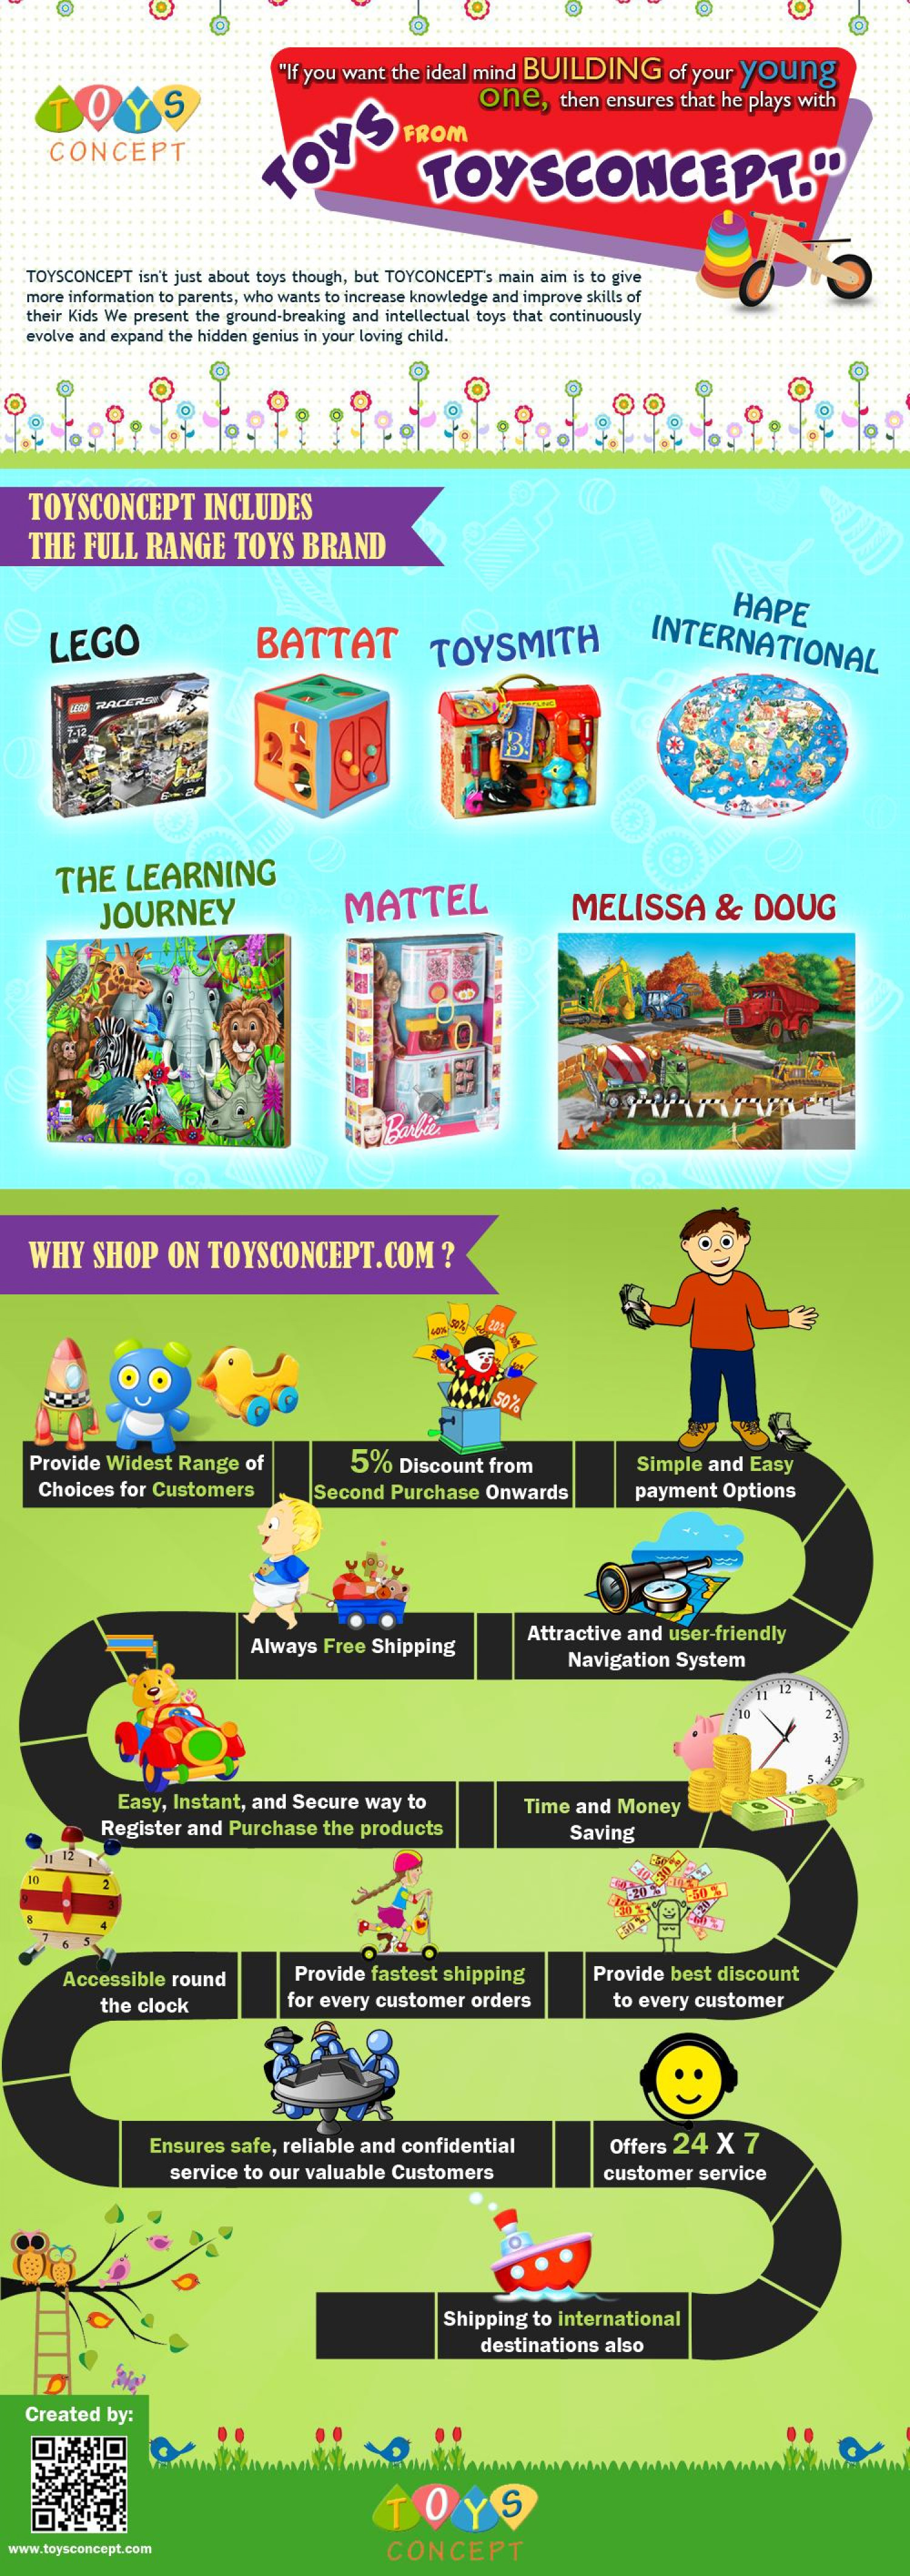 Infographic : Why Shop On Toysconcept.com Infographic